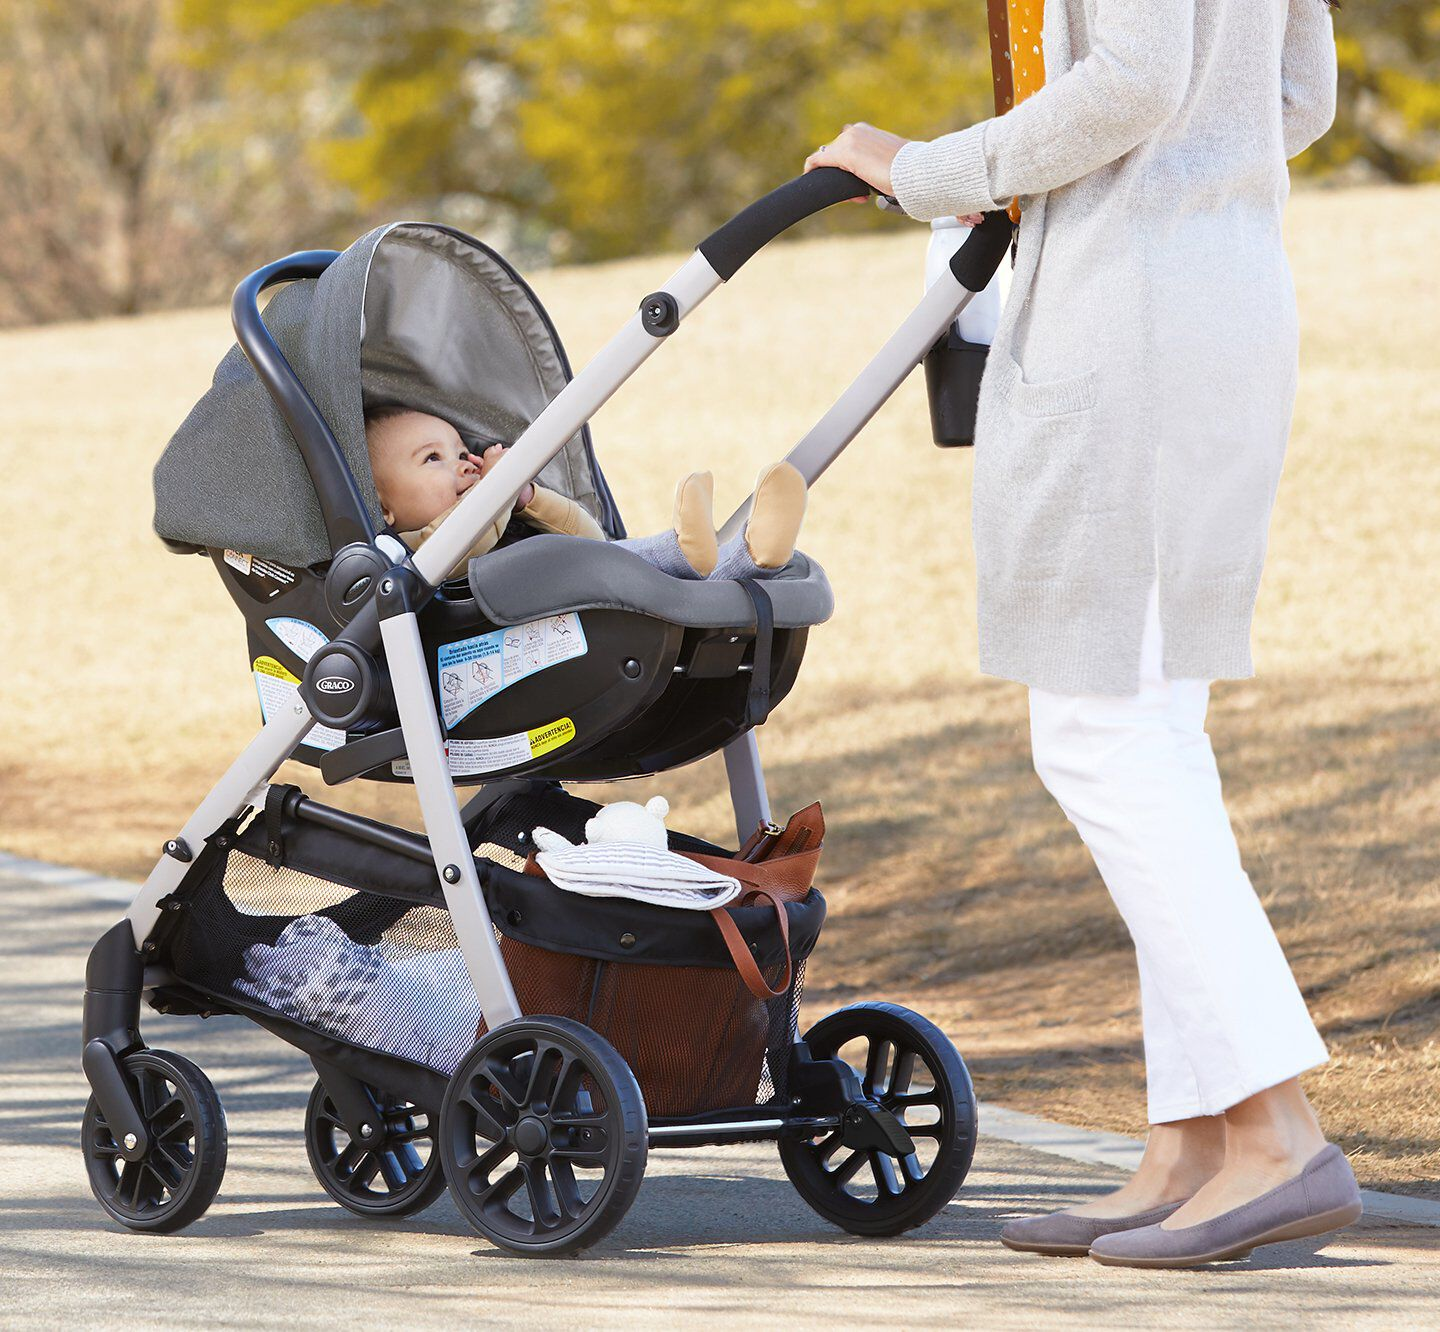 infant in stroller that you can affix your infant car seat to